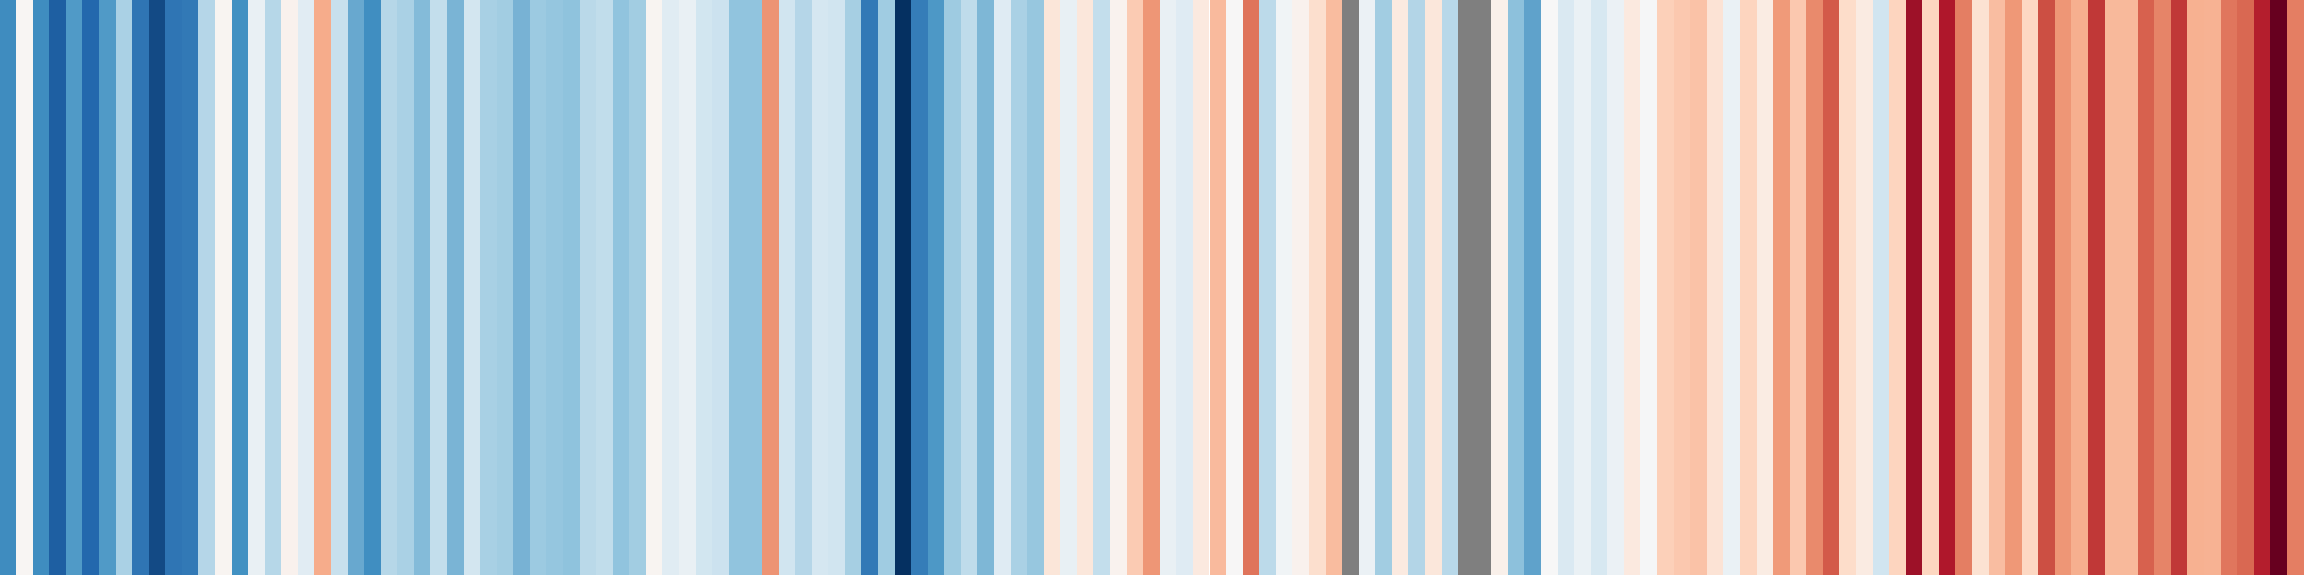 How to create 'Warming Stripes' in R